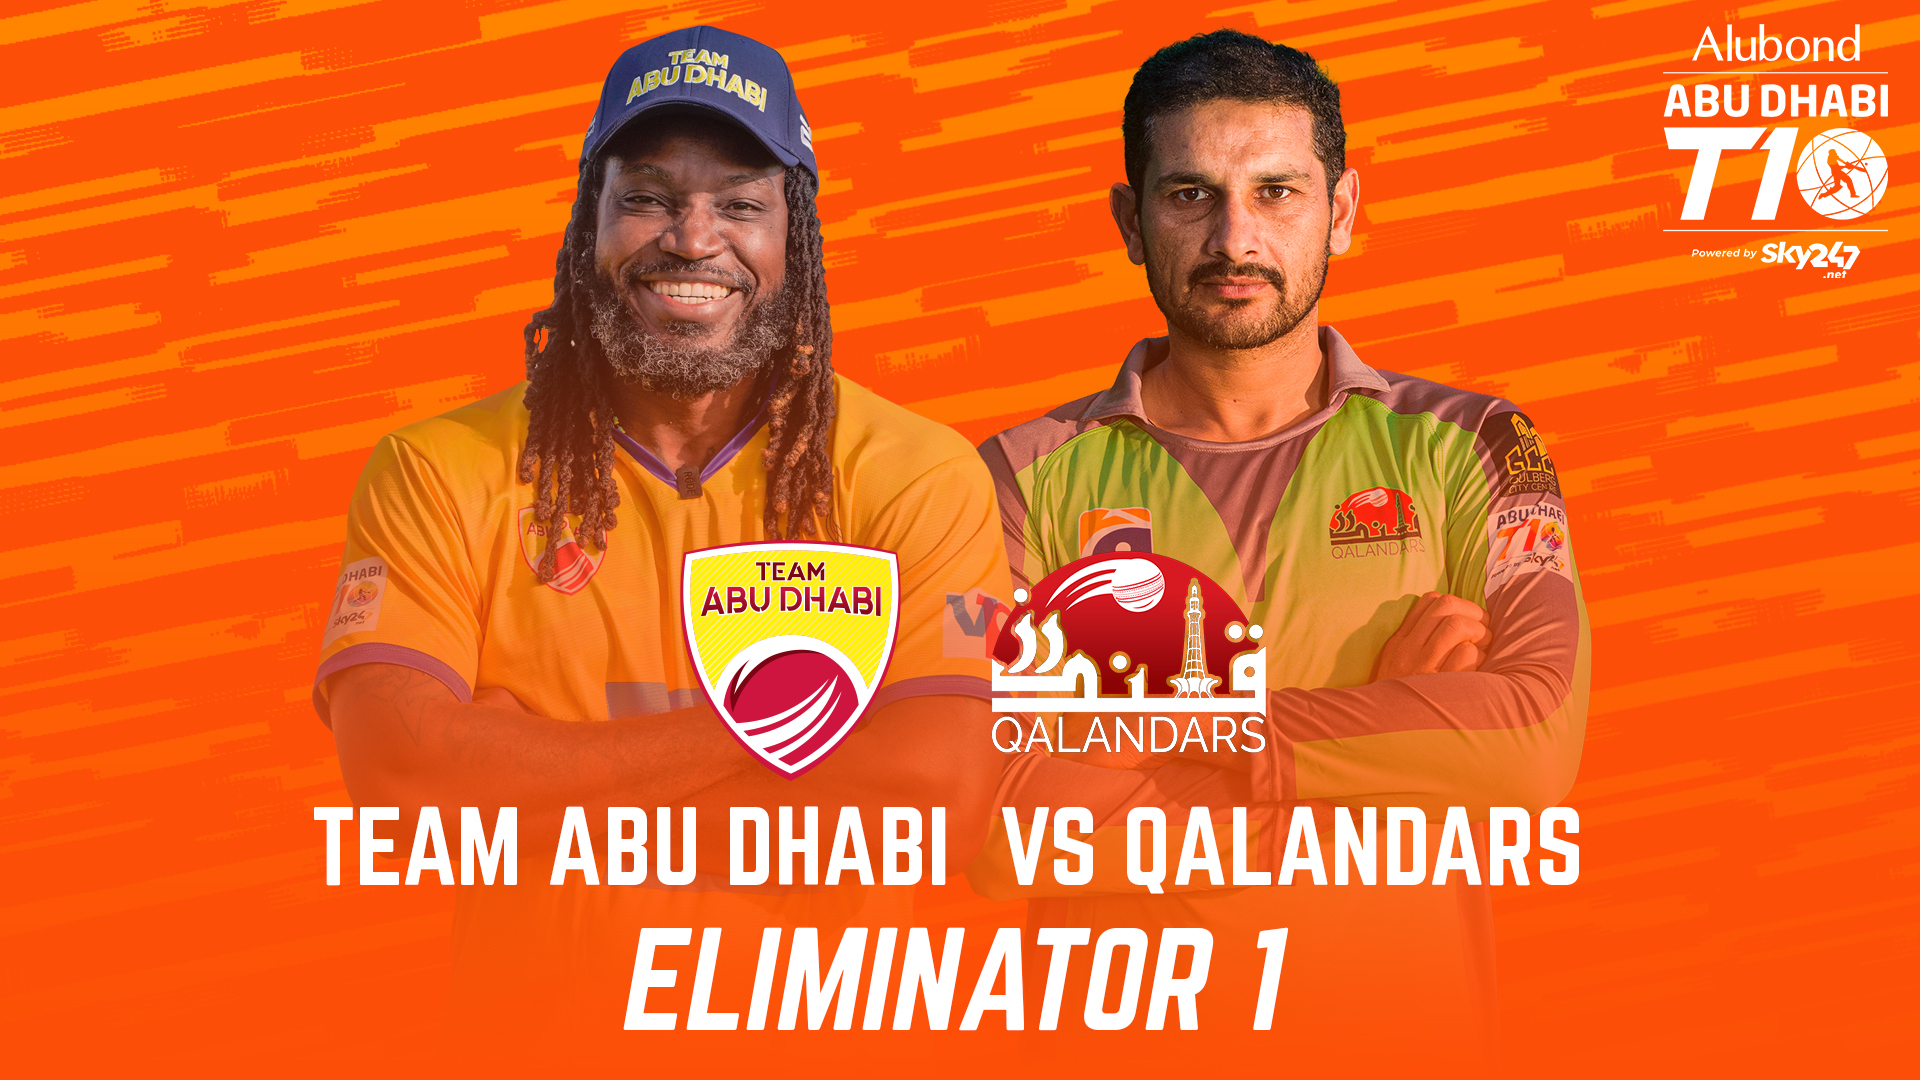 Match 26 I Eliminator 1 I Day 9 I HIGHLIGHTS I Team Abu Dhabi vs Qalandars